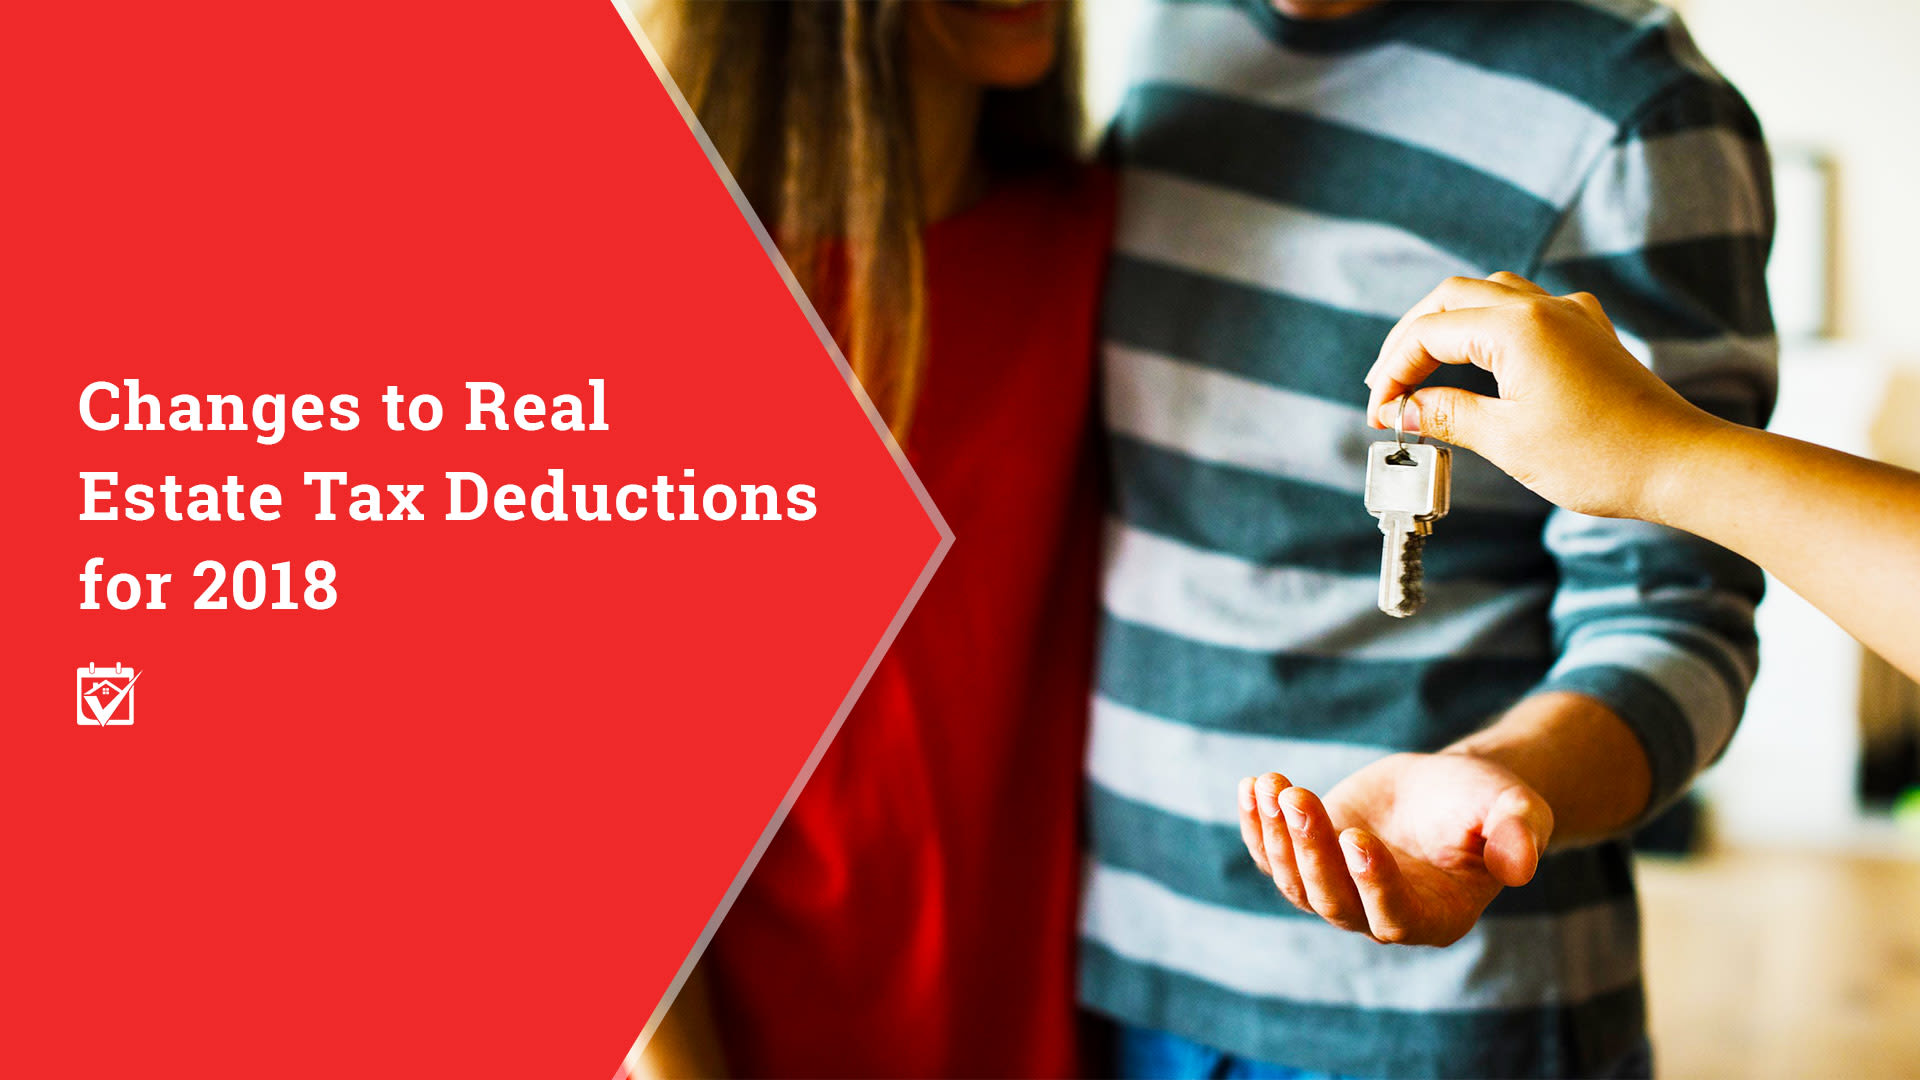 Changes to Real Estate Tax Deductions for 2018 – from HomeKeepr